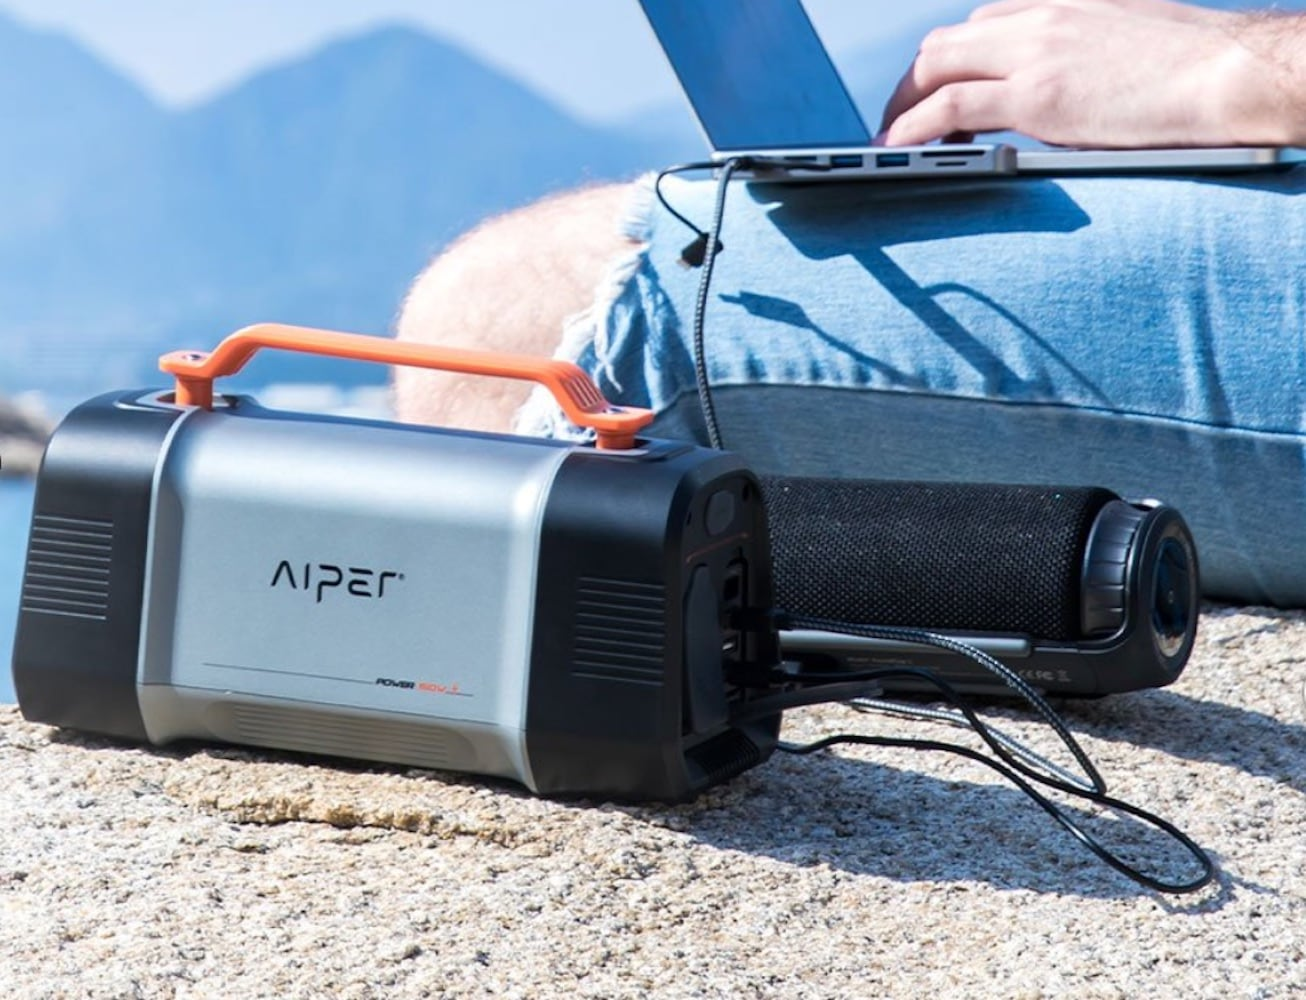 Aiper Flash 150W Reliable Portable Power Station or all your outdoor adventures